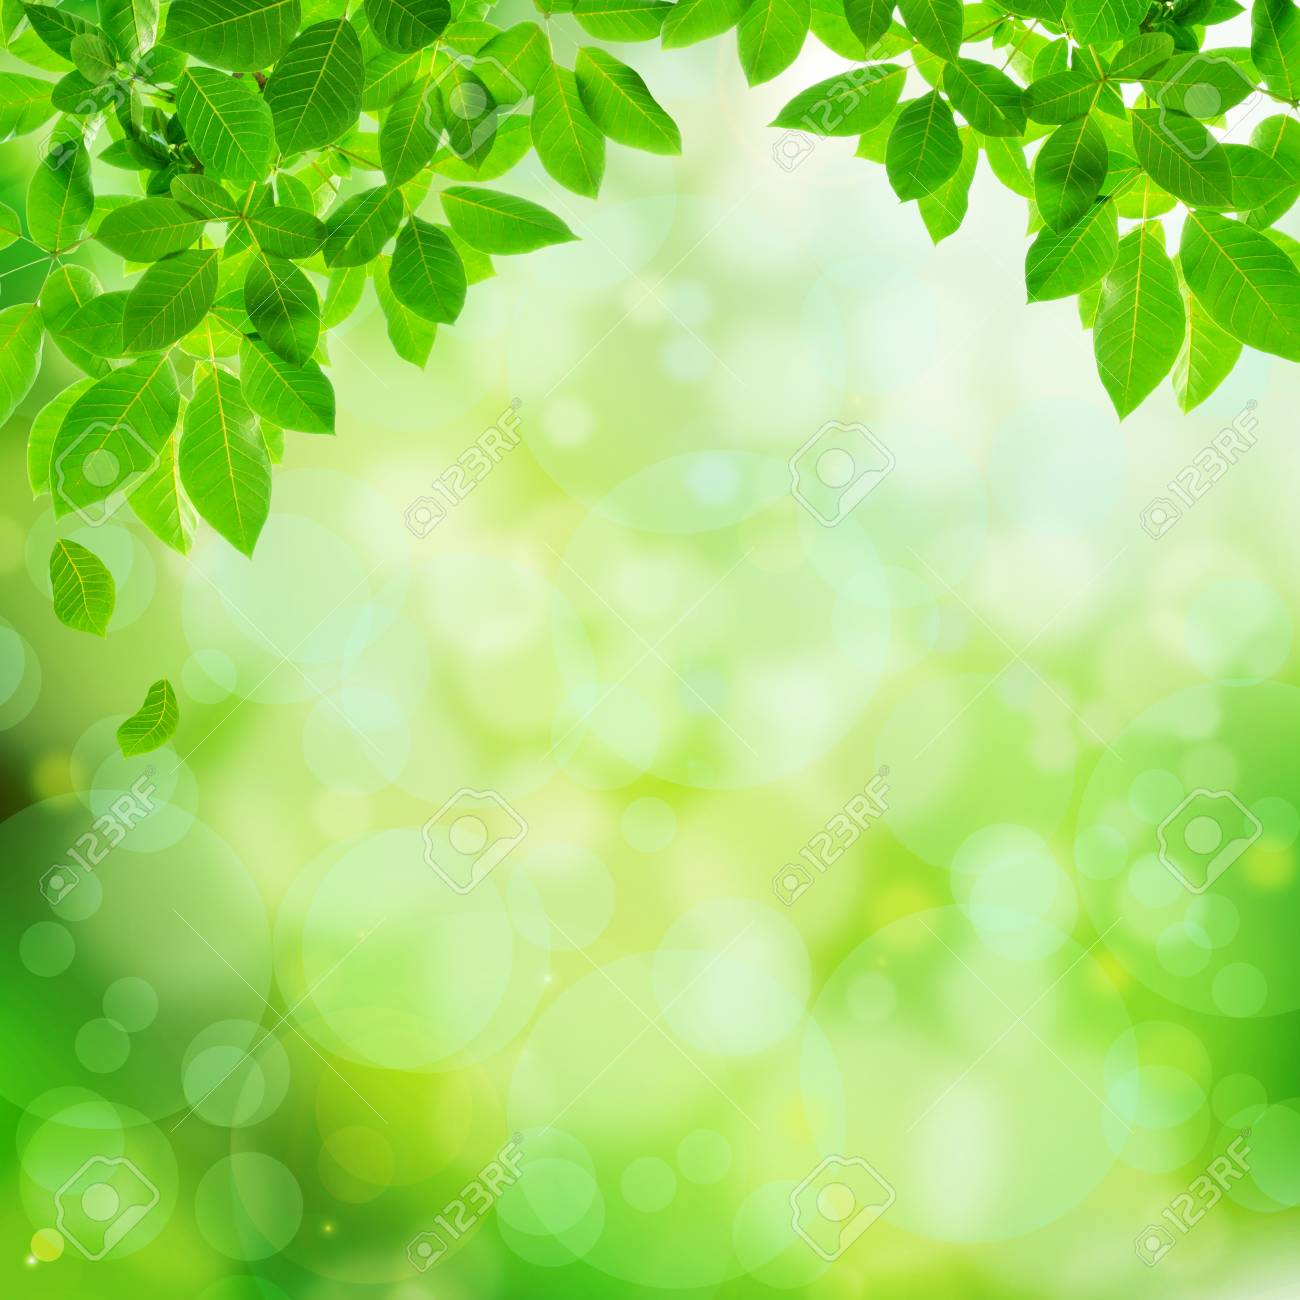 Green Leaves On Bokeh Abstract Background Border Design